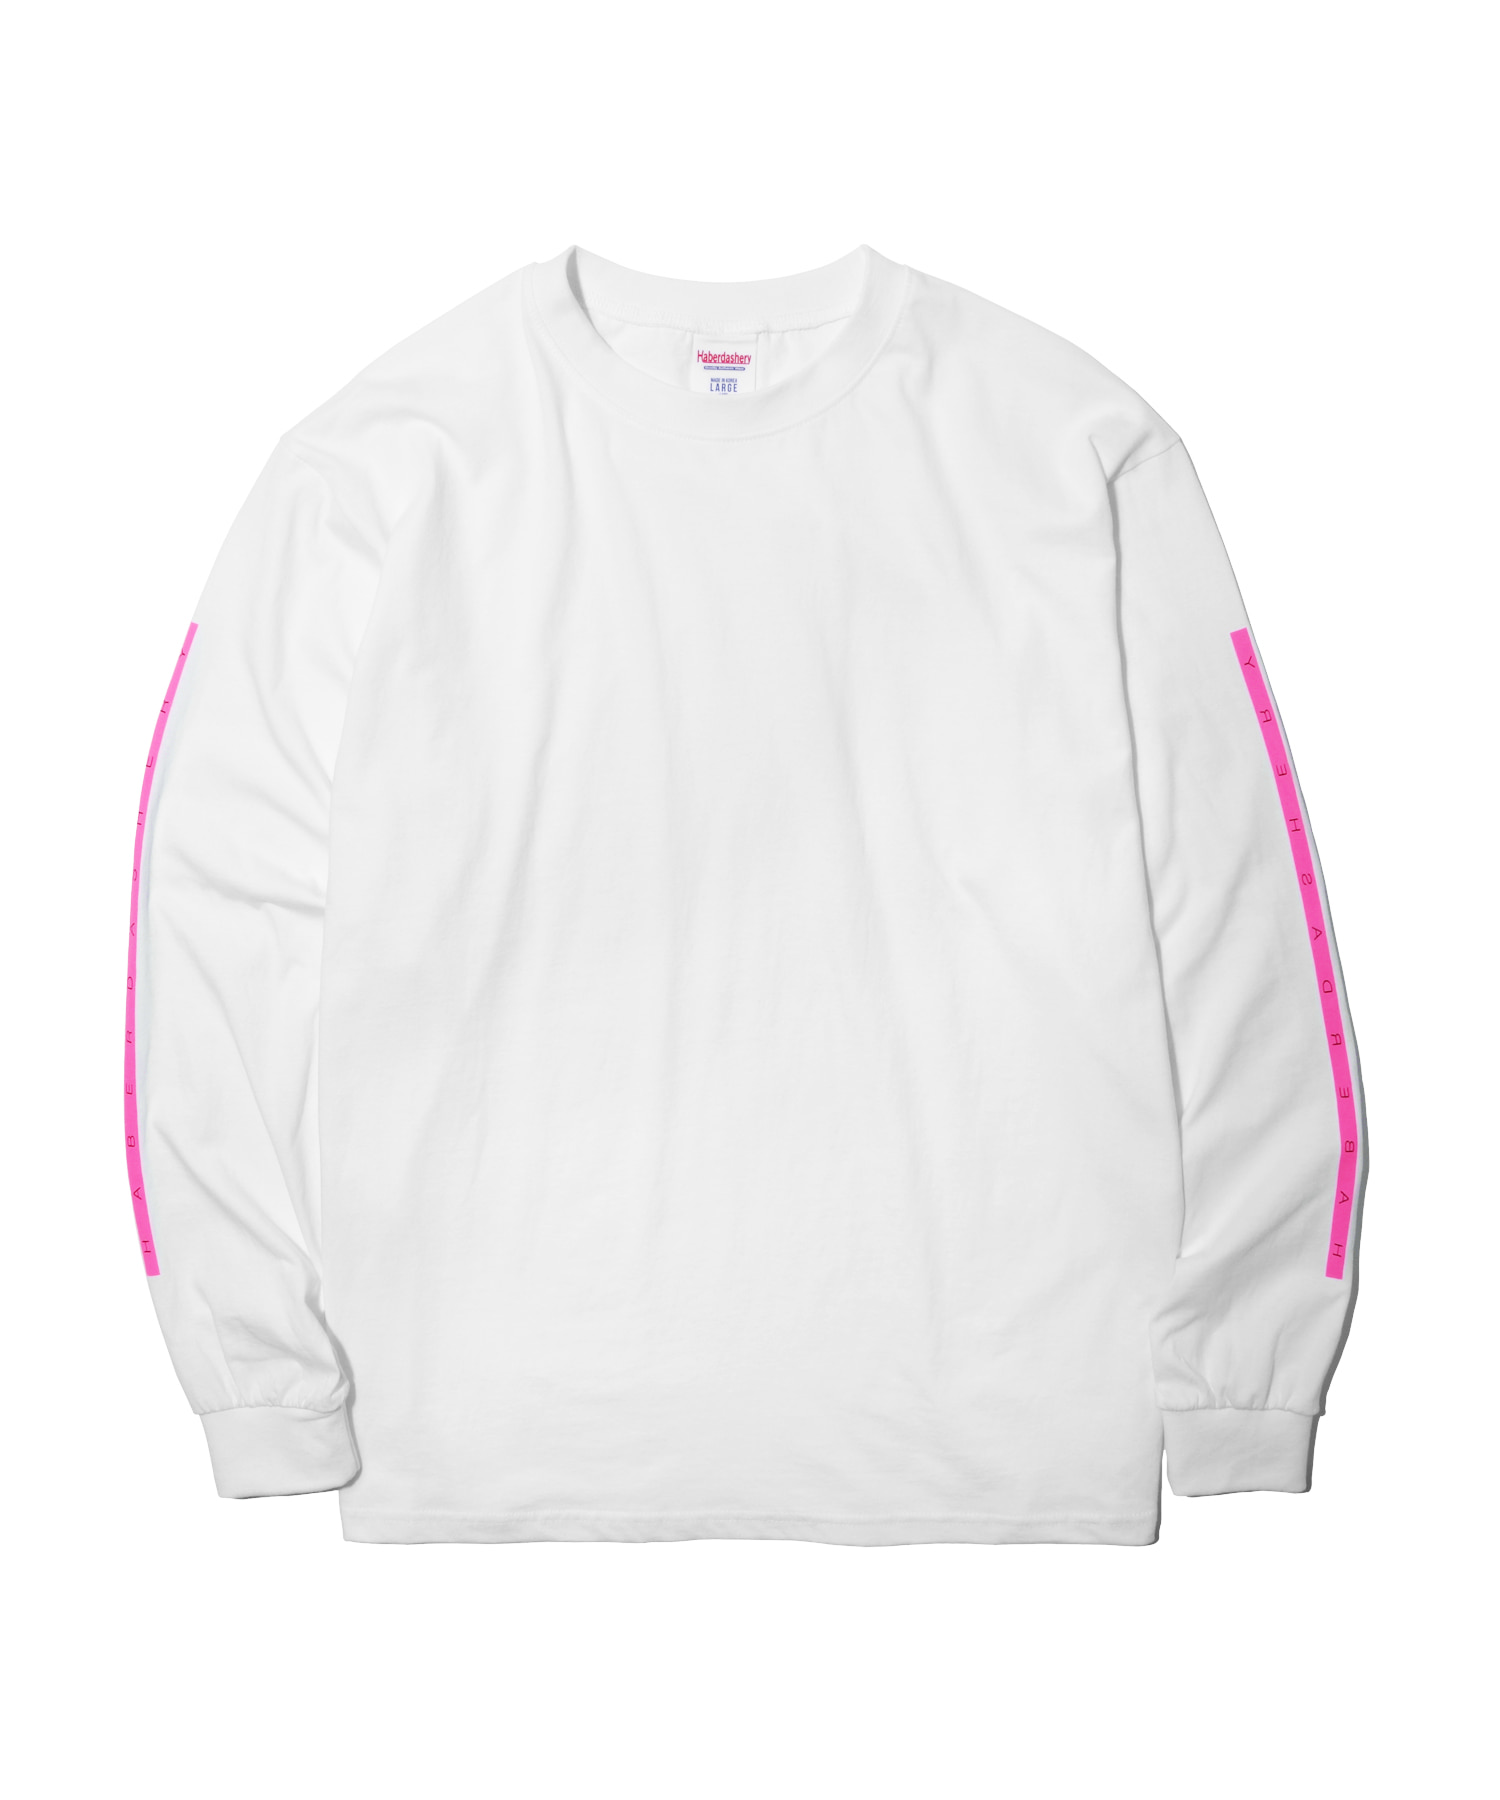 해버대셔리 BOX LONG SLEEVE_Neon Pink